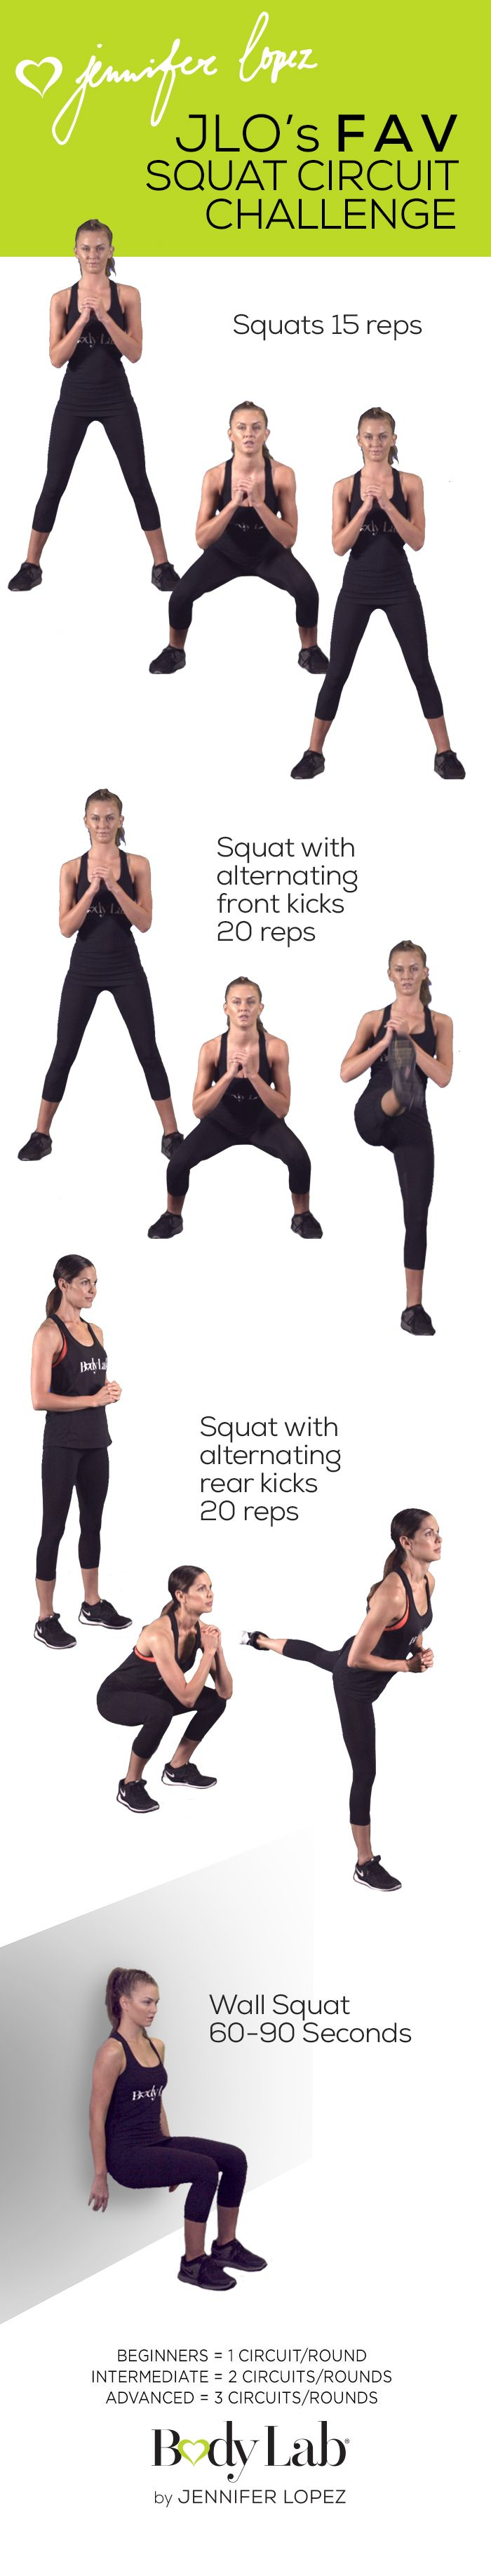 We know you want in on Jennifer Lopezs favorite workouts-We know you want in on Jennifer Lopez's favorite workouts. Check out her favorite Squat Circuit Challenge!